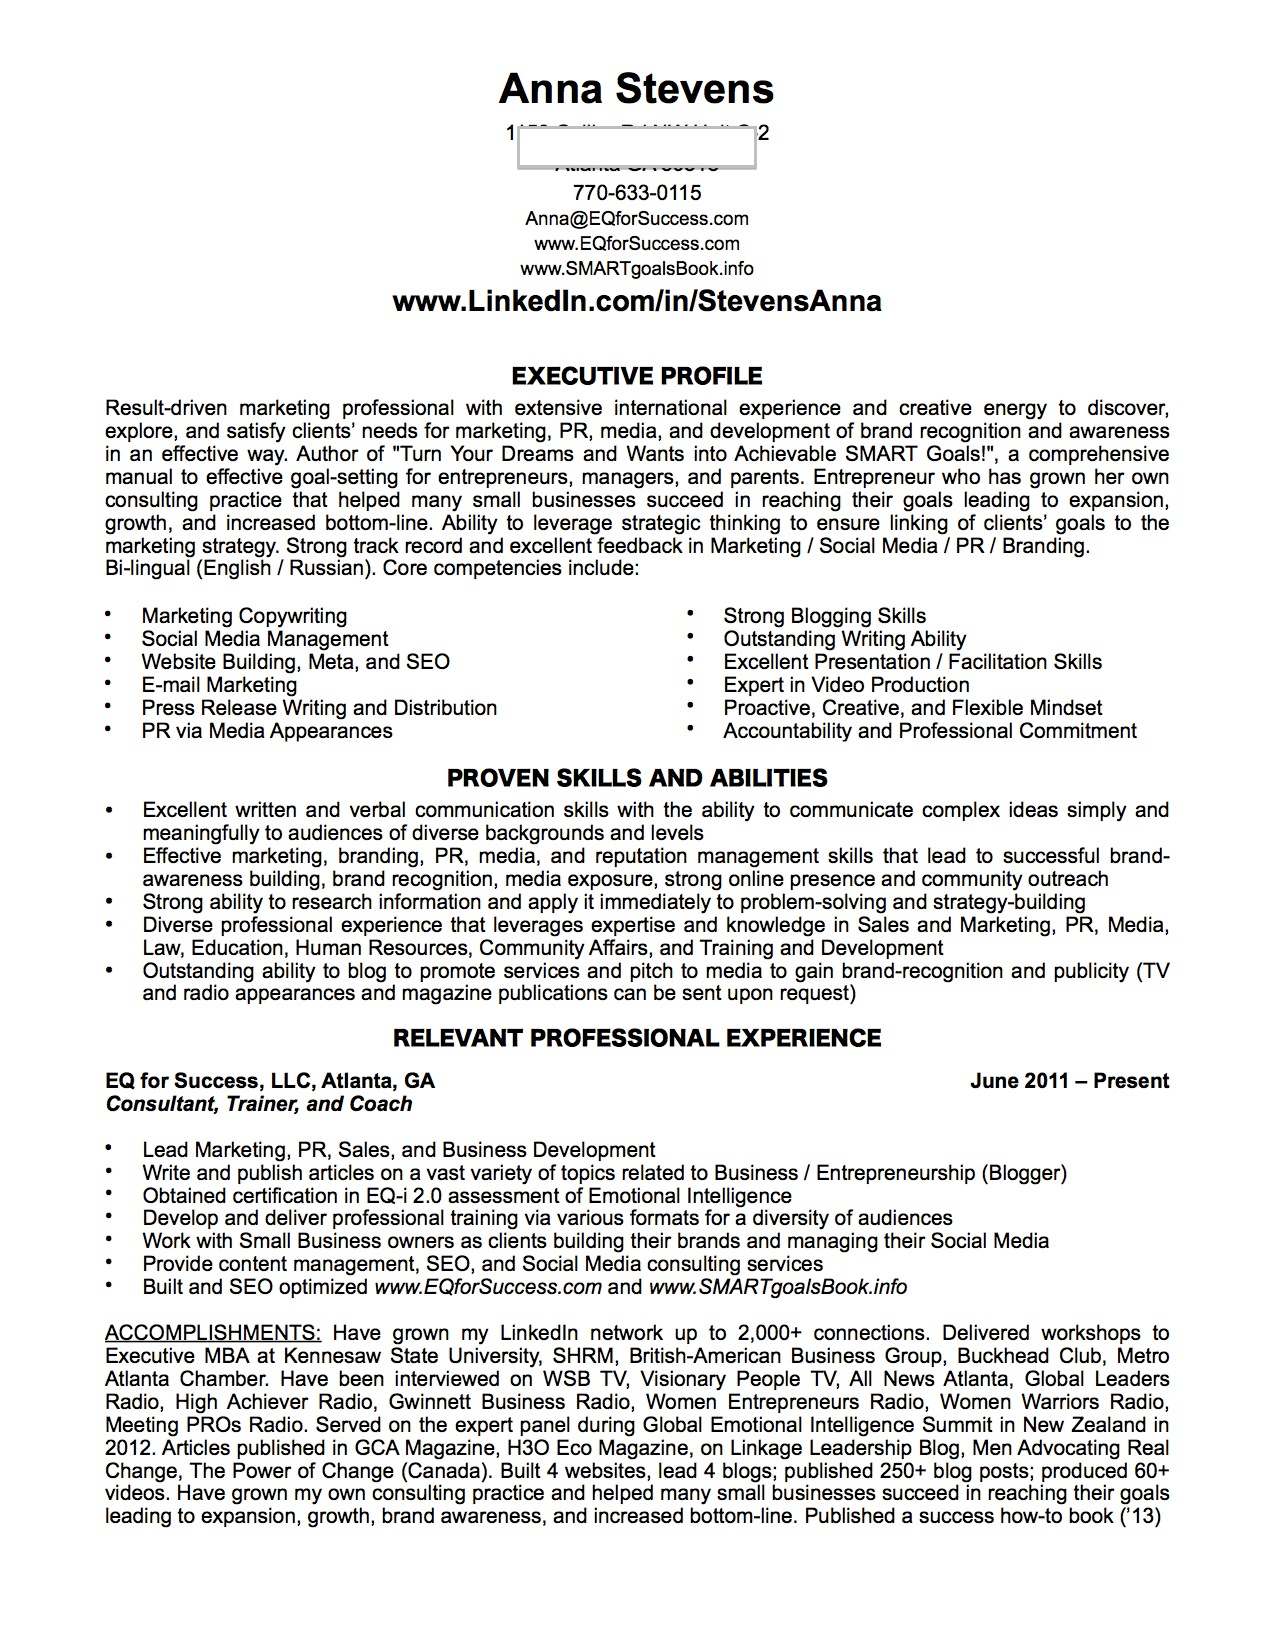 Sample Resume For Mba Admission Career Coaching Pmba Pmba At Robinson